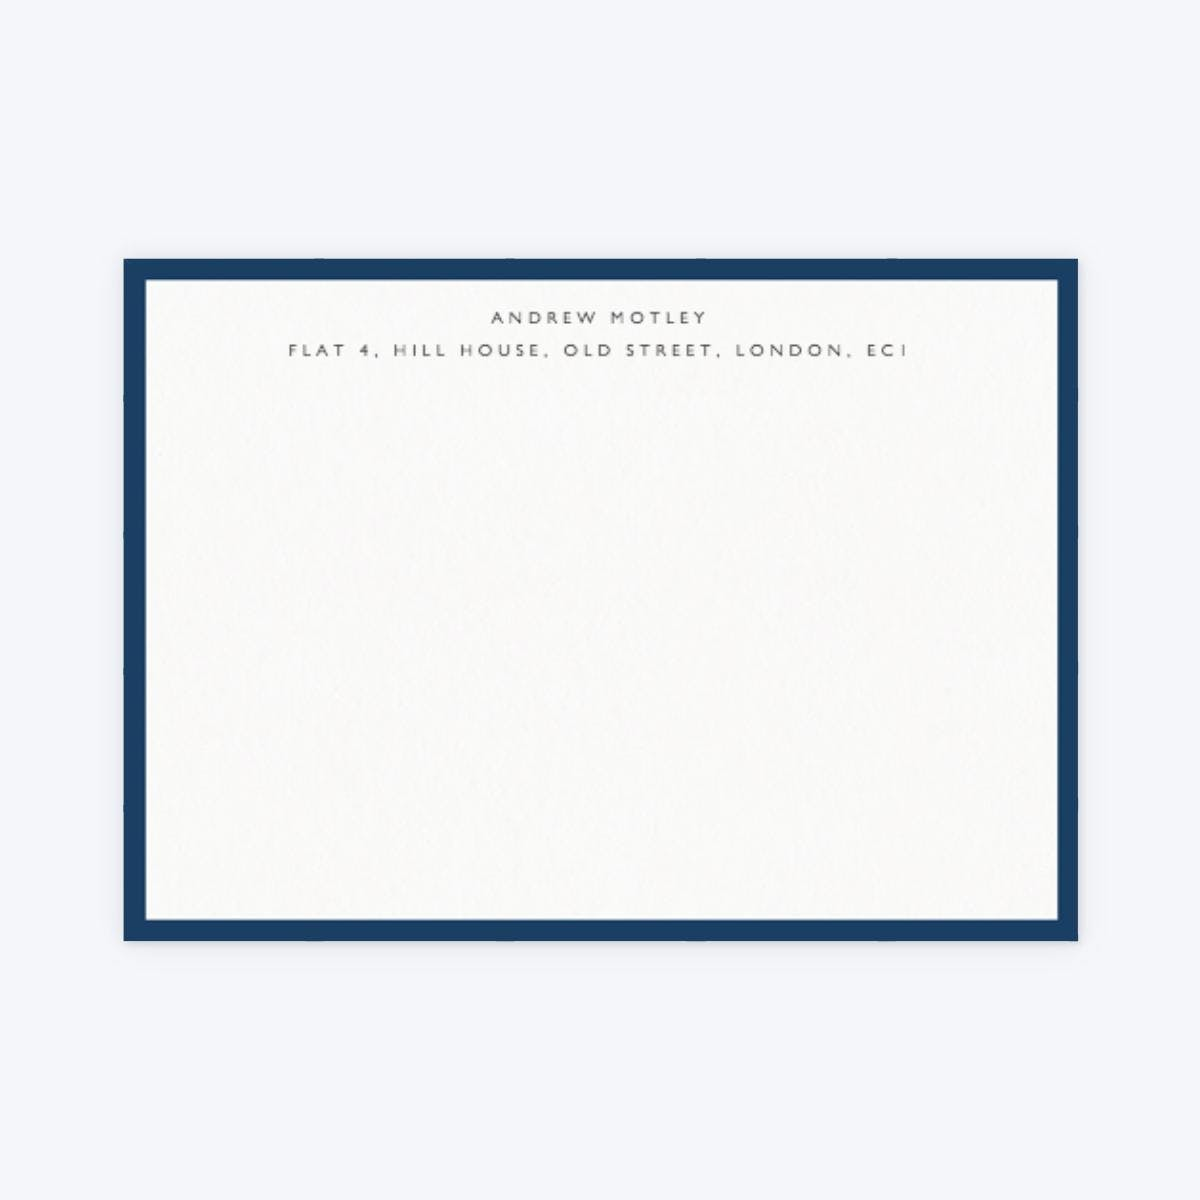 https—www.papier.com-product_image-1678-10-classic-border-navy-481_front_1541595096.png